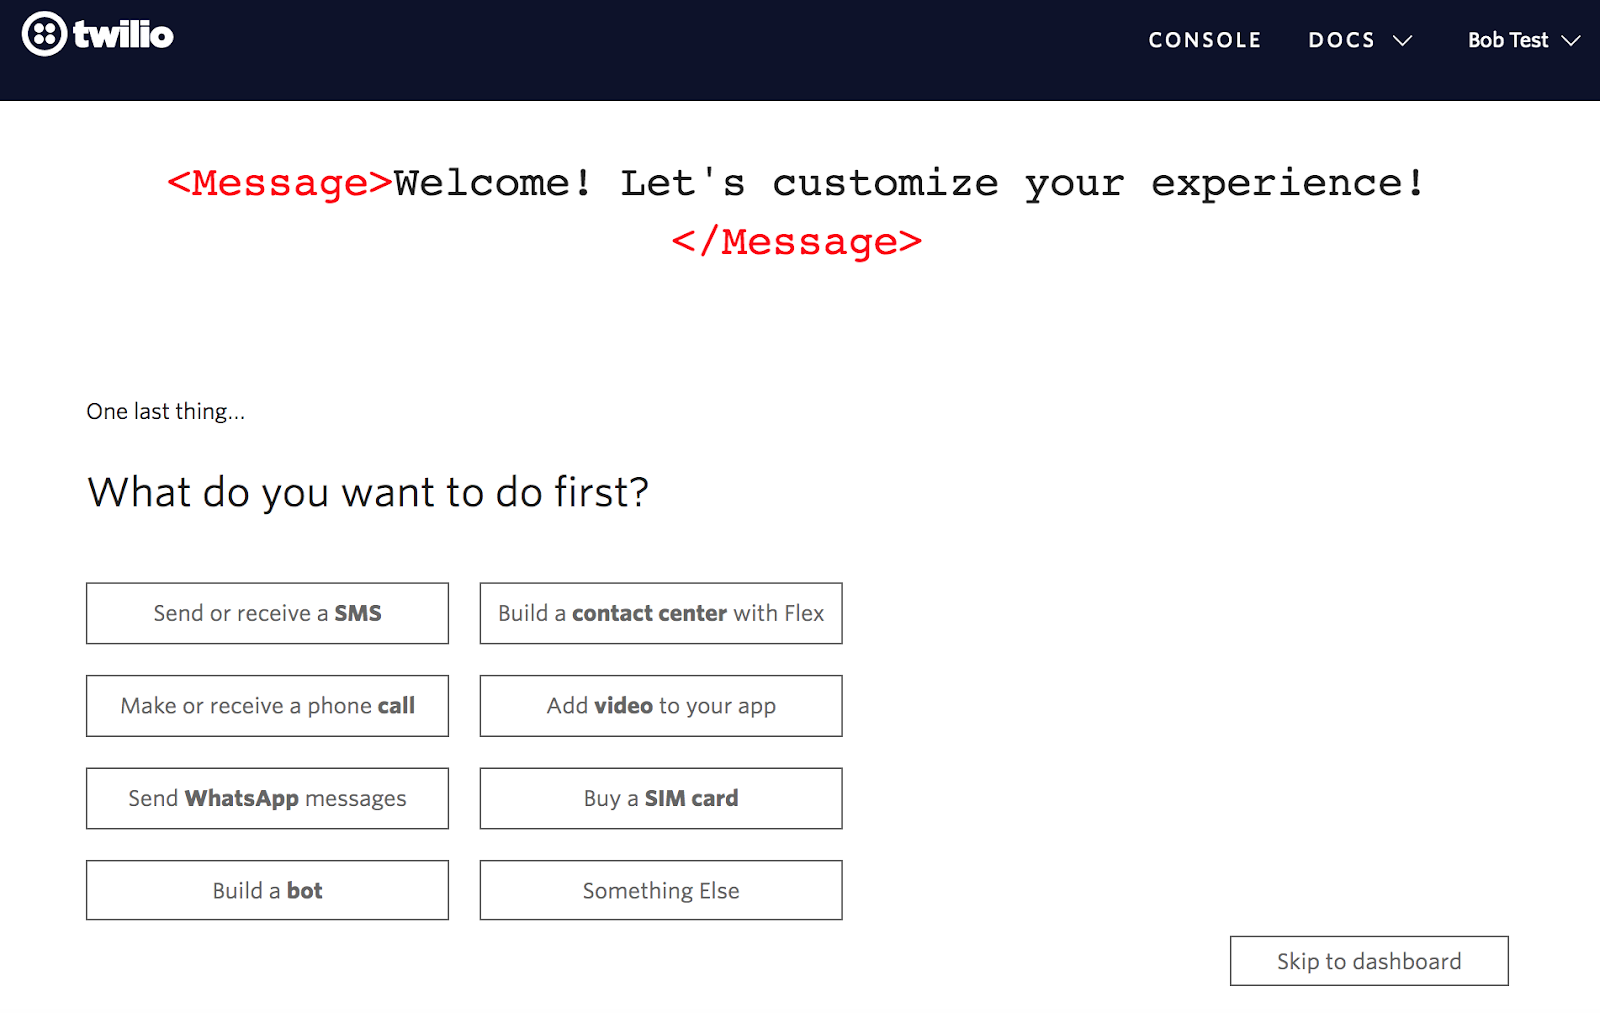 twilio user onboarding personalization question 4